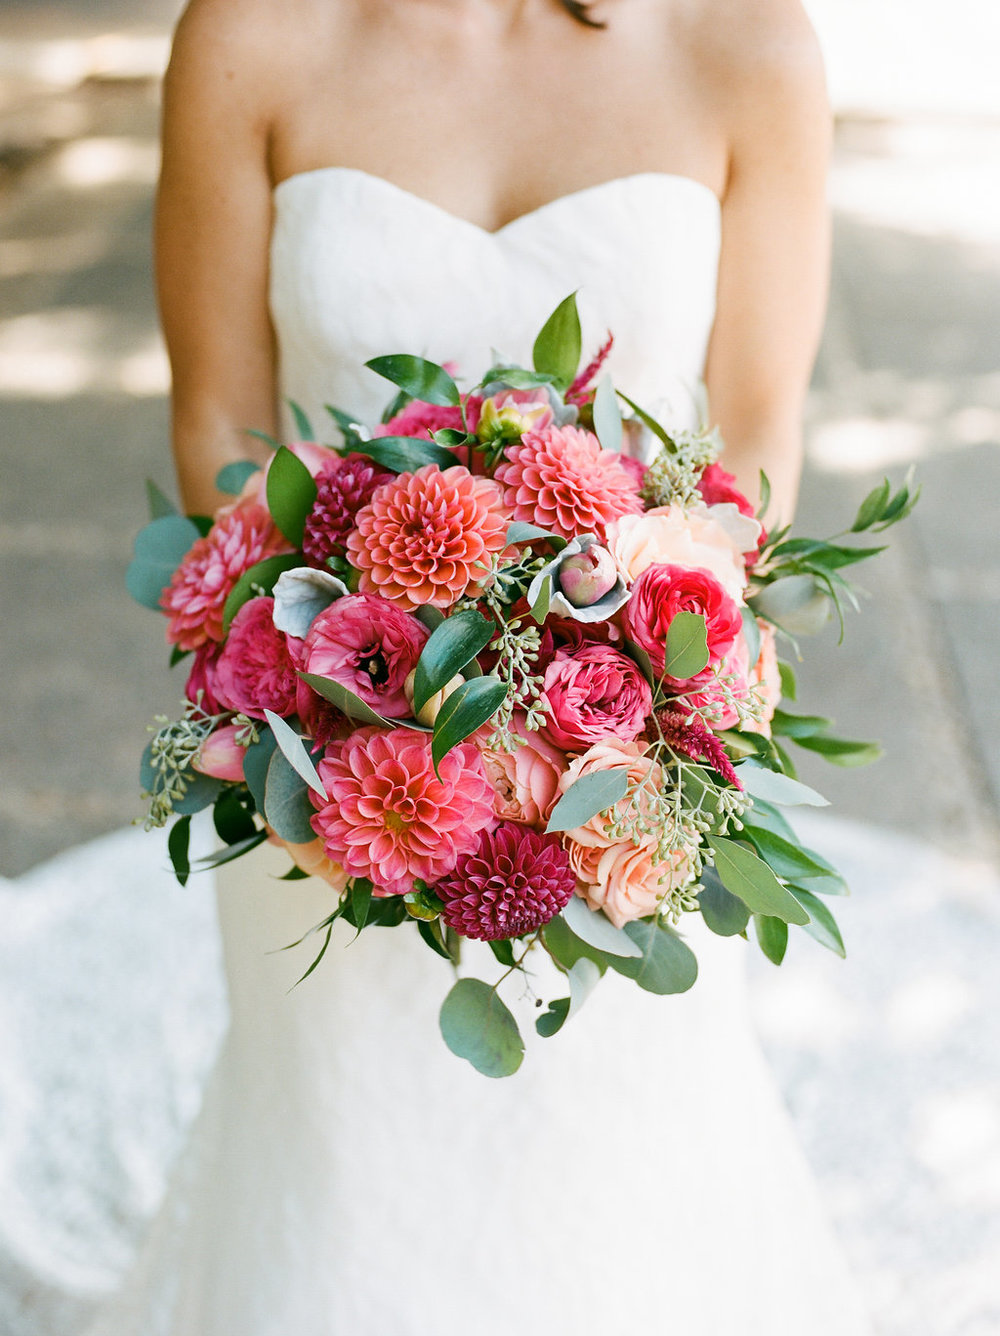 Longview Gallery Wedding Washington DC Lissa Ryan Photography Sincerely Pete Events Pink Bridal Bouquet